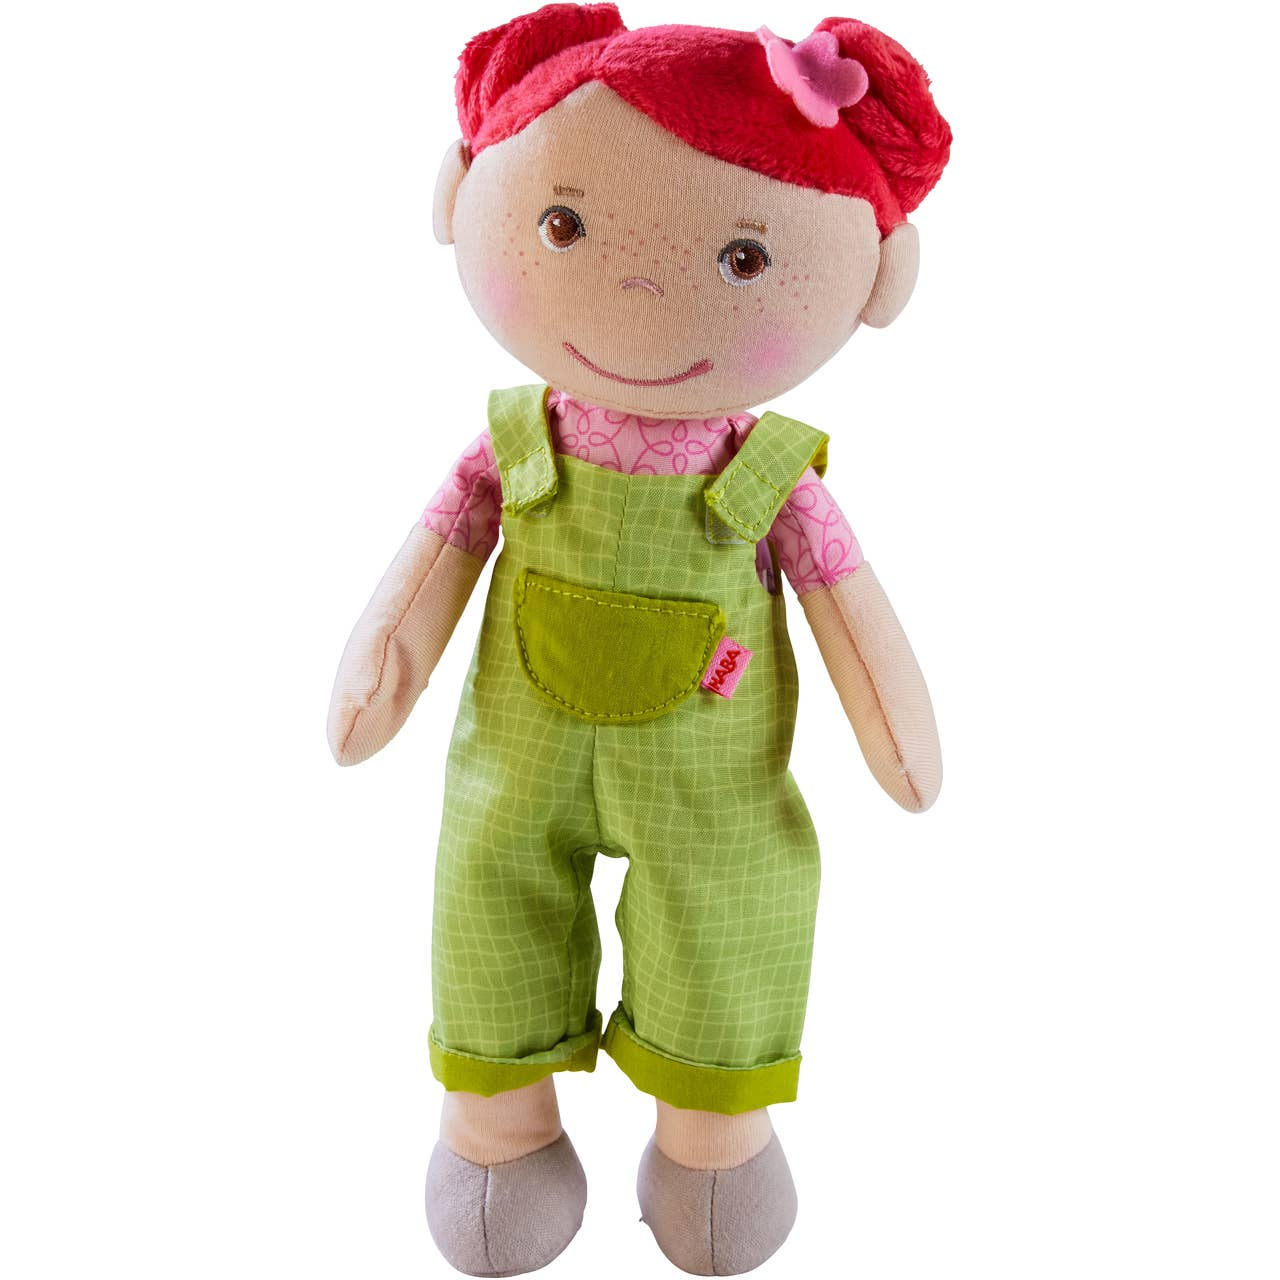 Haba Snug Up Doll Dorothea - Crunch Natural Parenting is where to buy